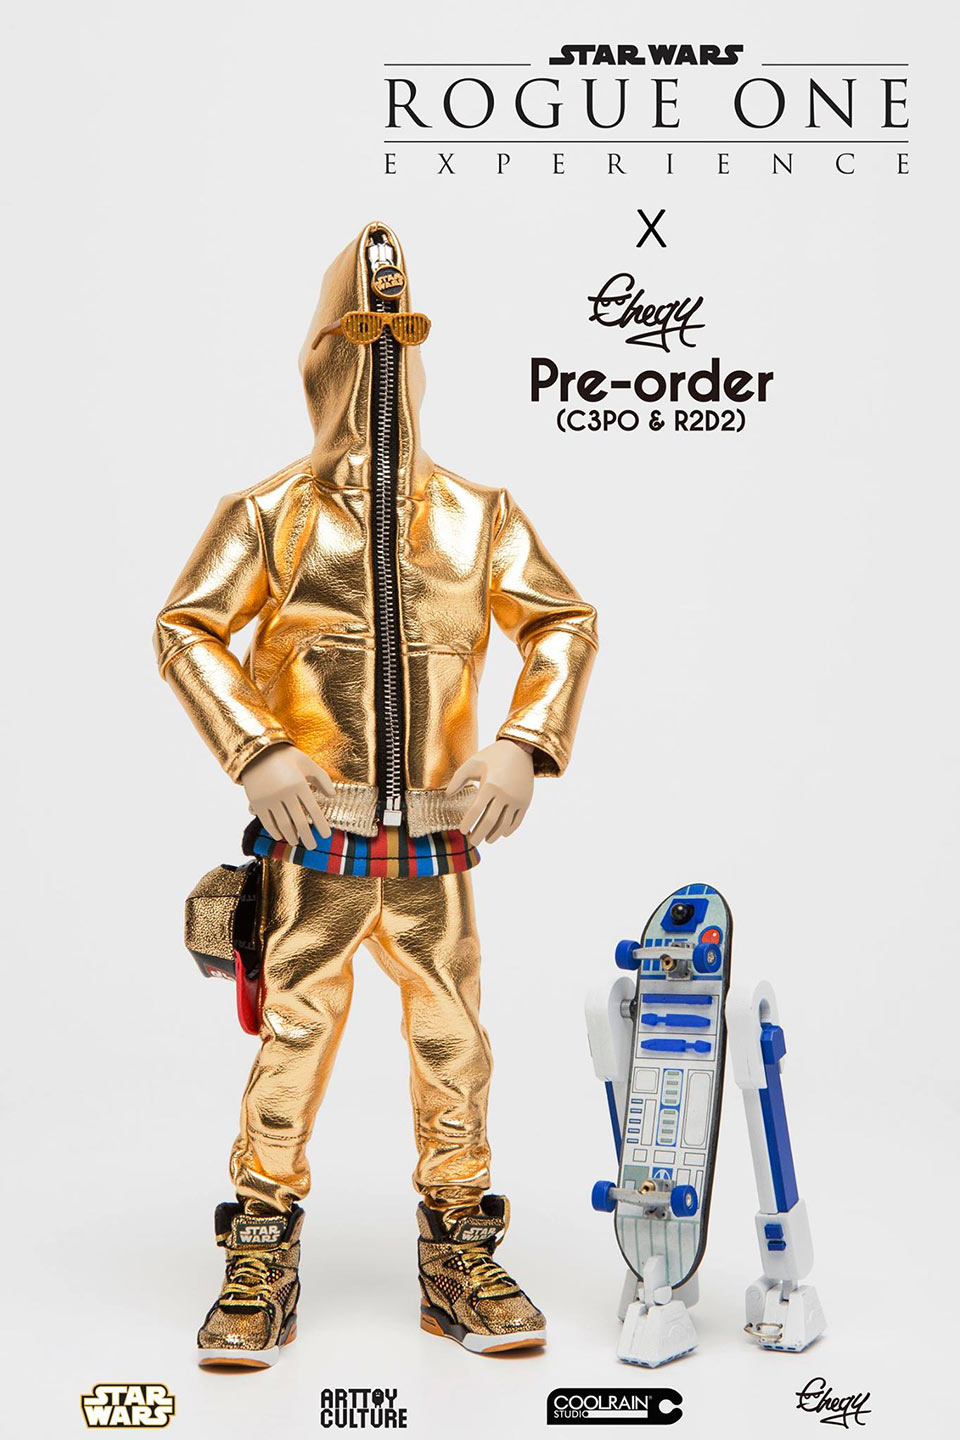 Chogy C-3PO & R2-D2 Action Figures